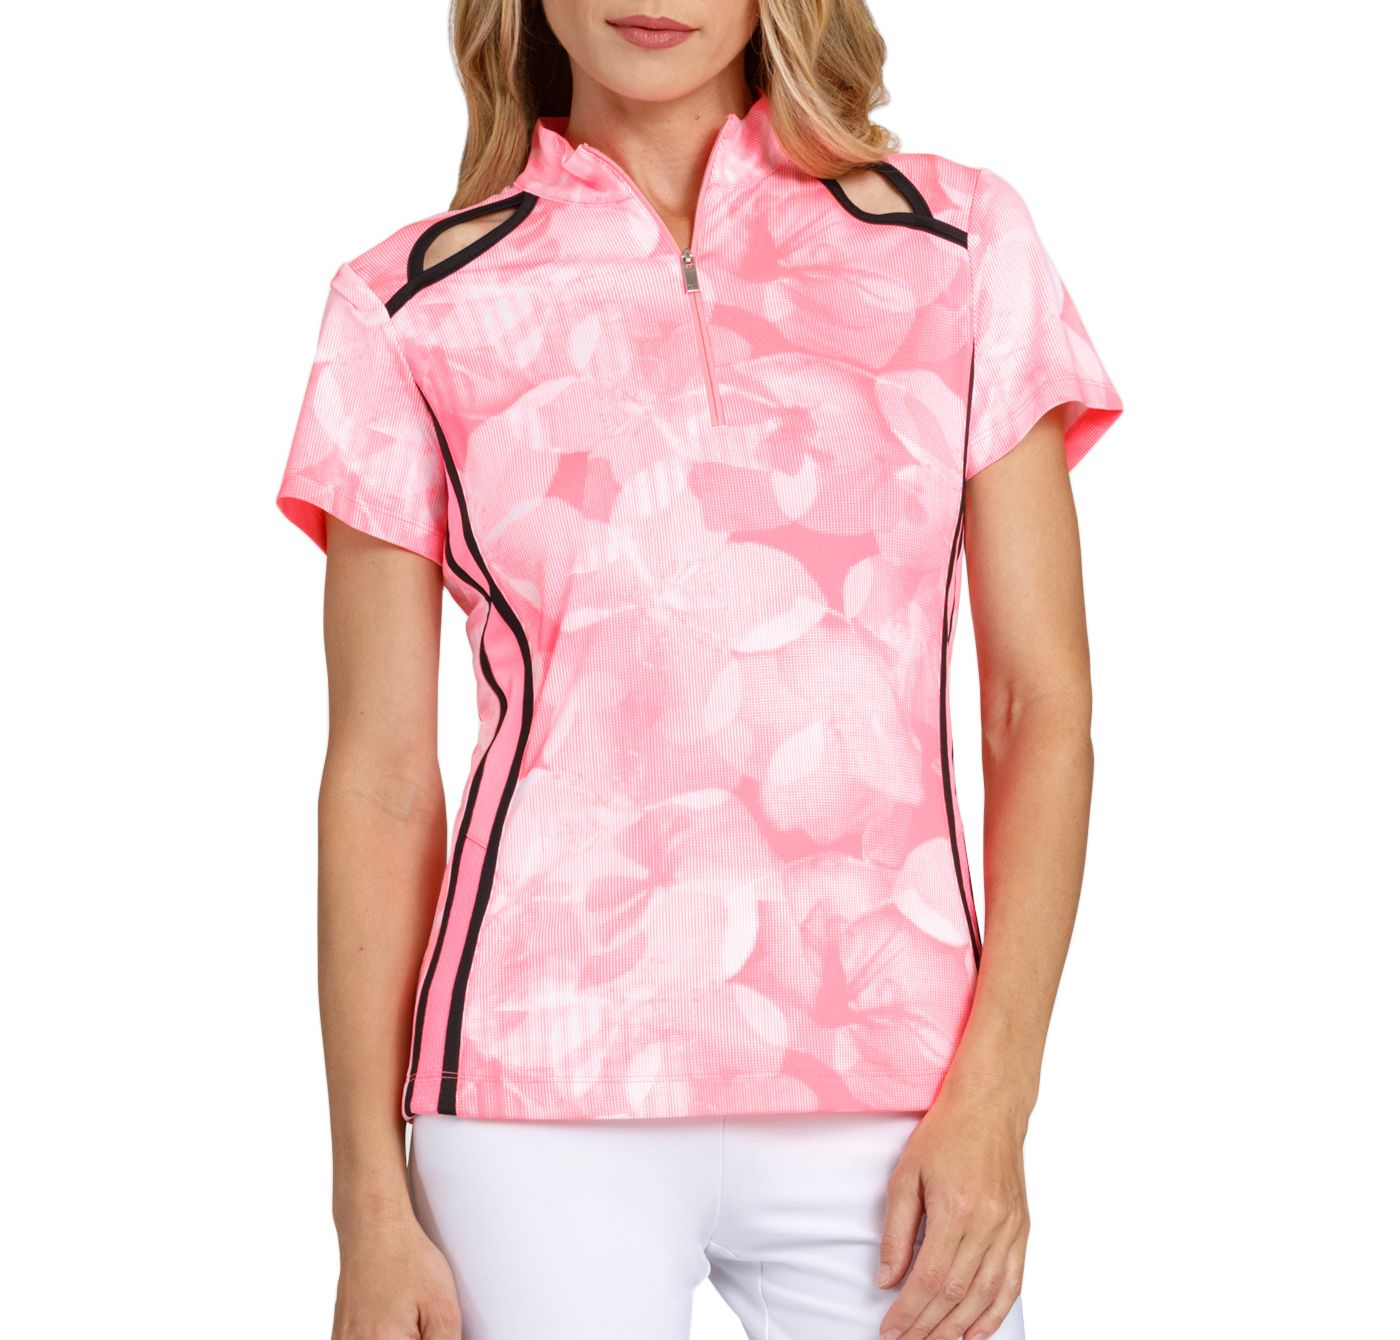 Tail Women's Floral Keyhole Cutout Mock Neck Golf Polo